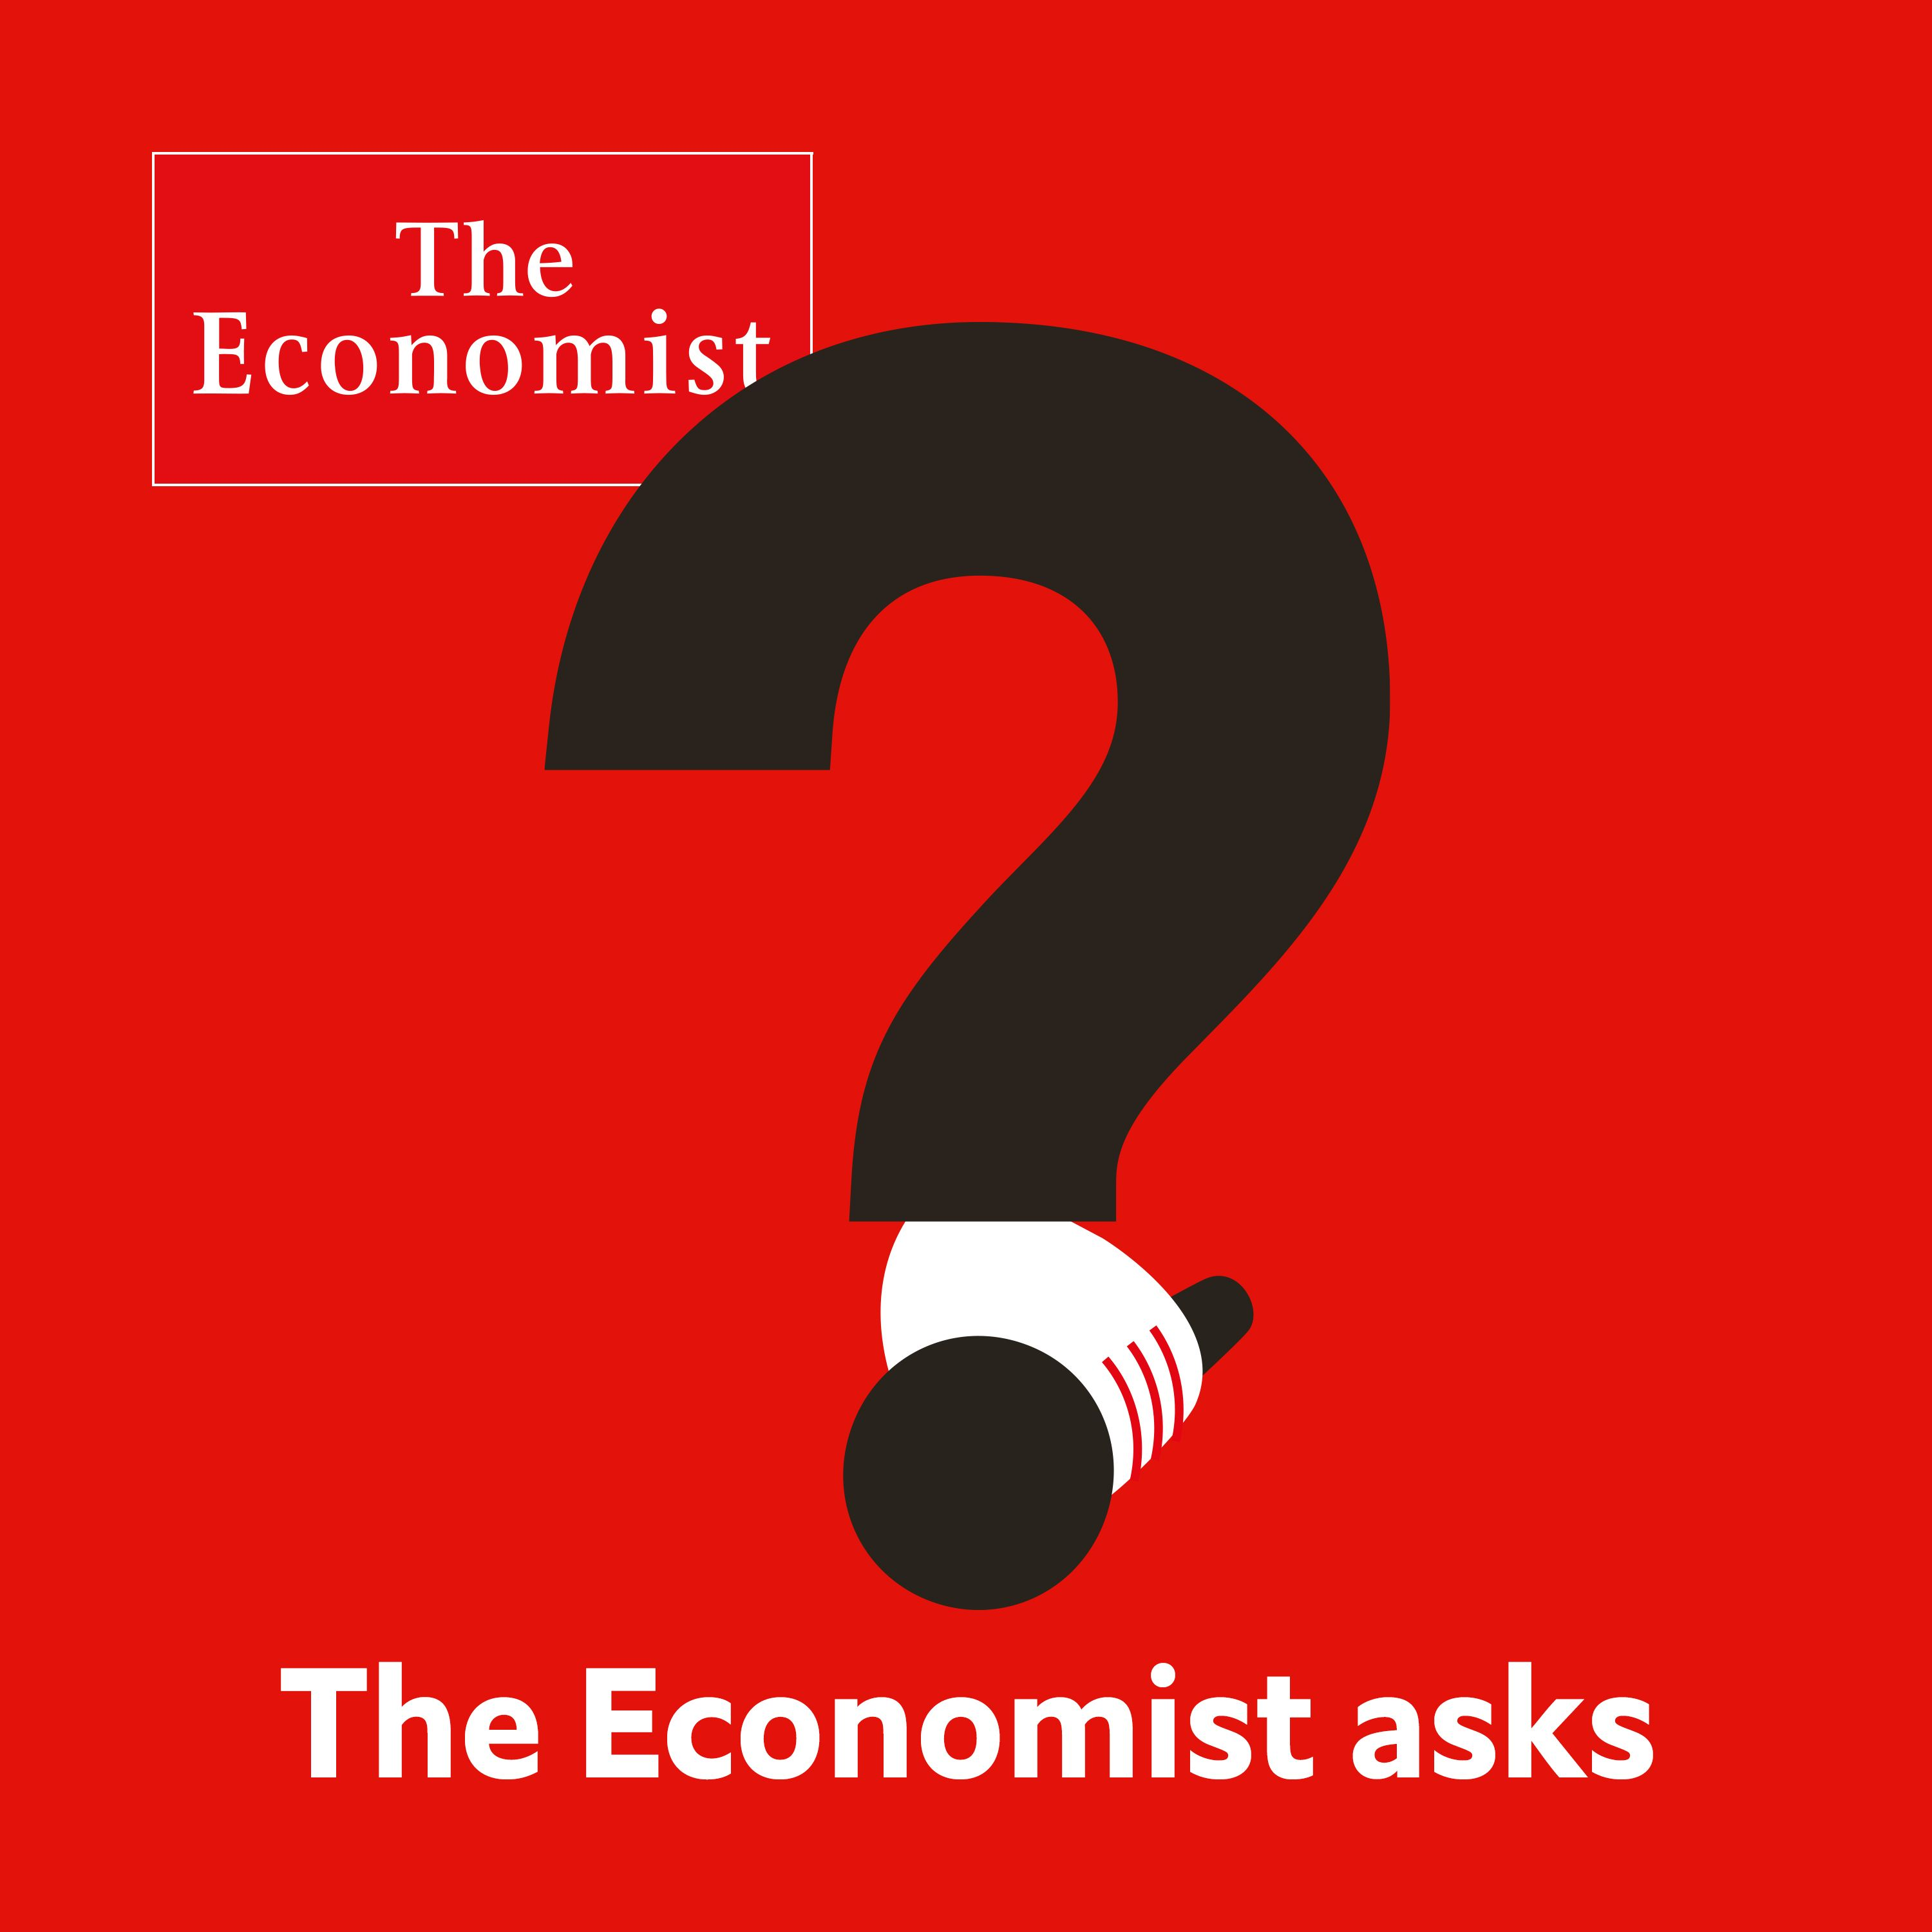 The Economist asks: Where does power lie in America?